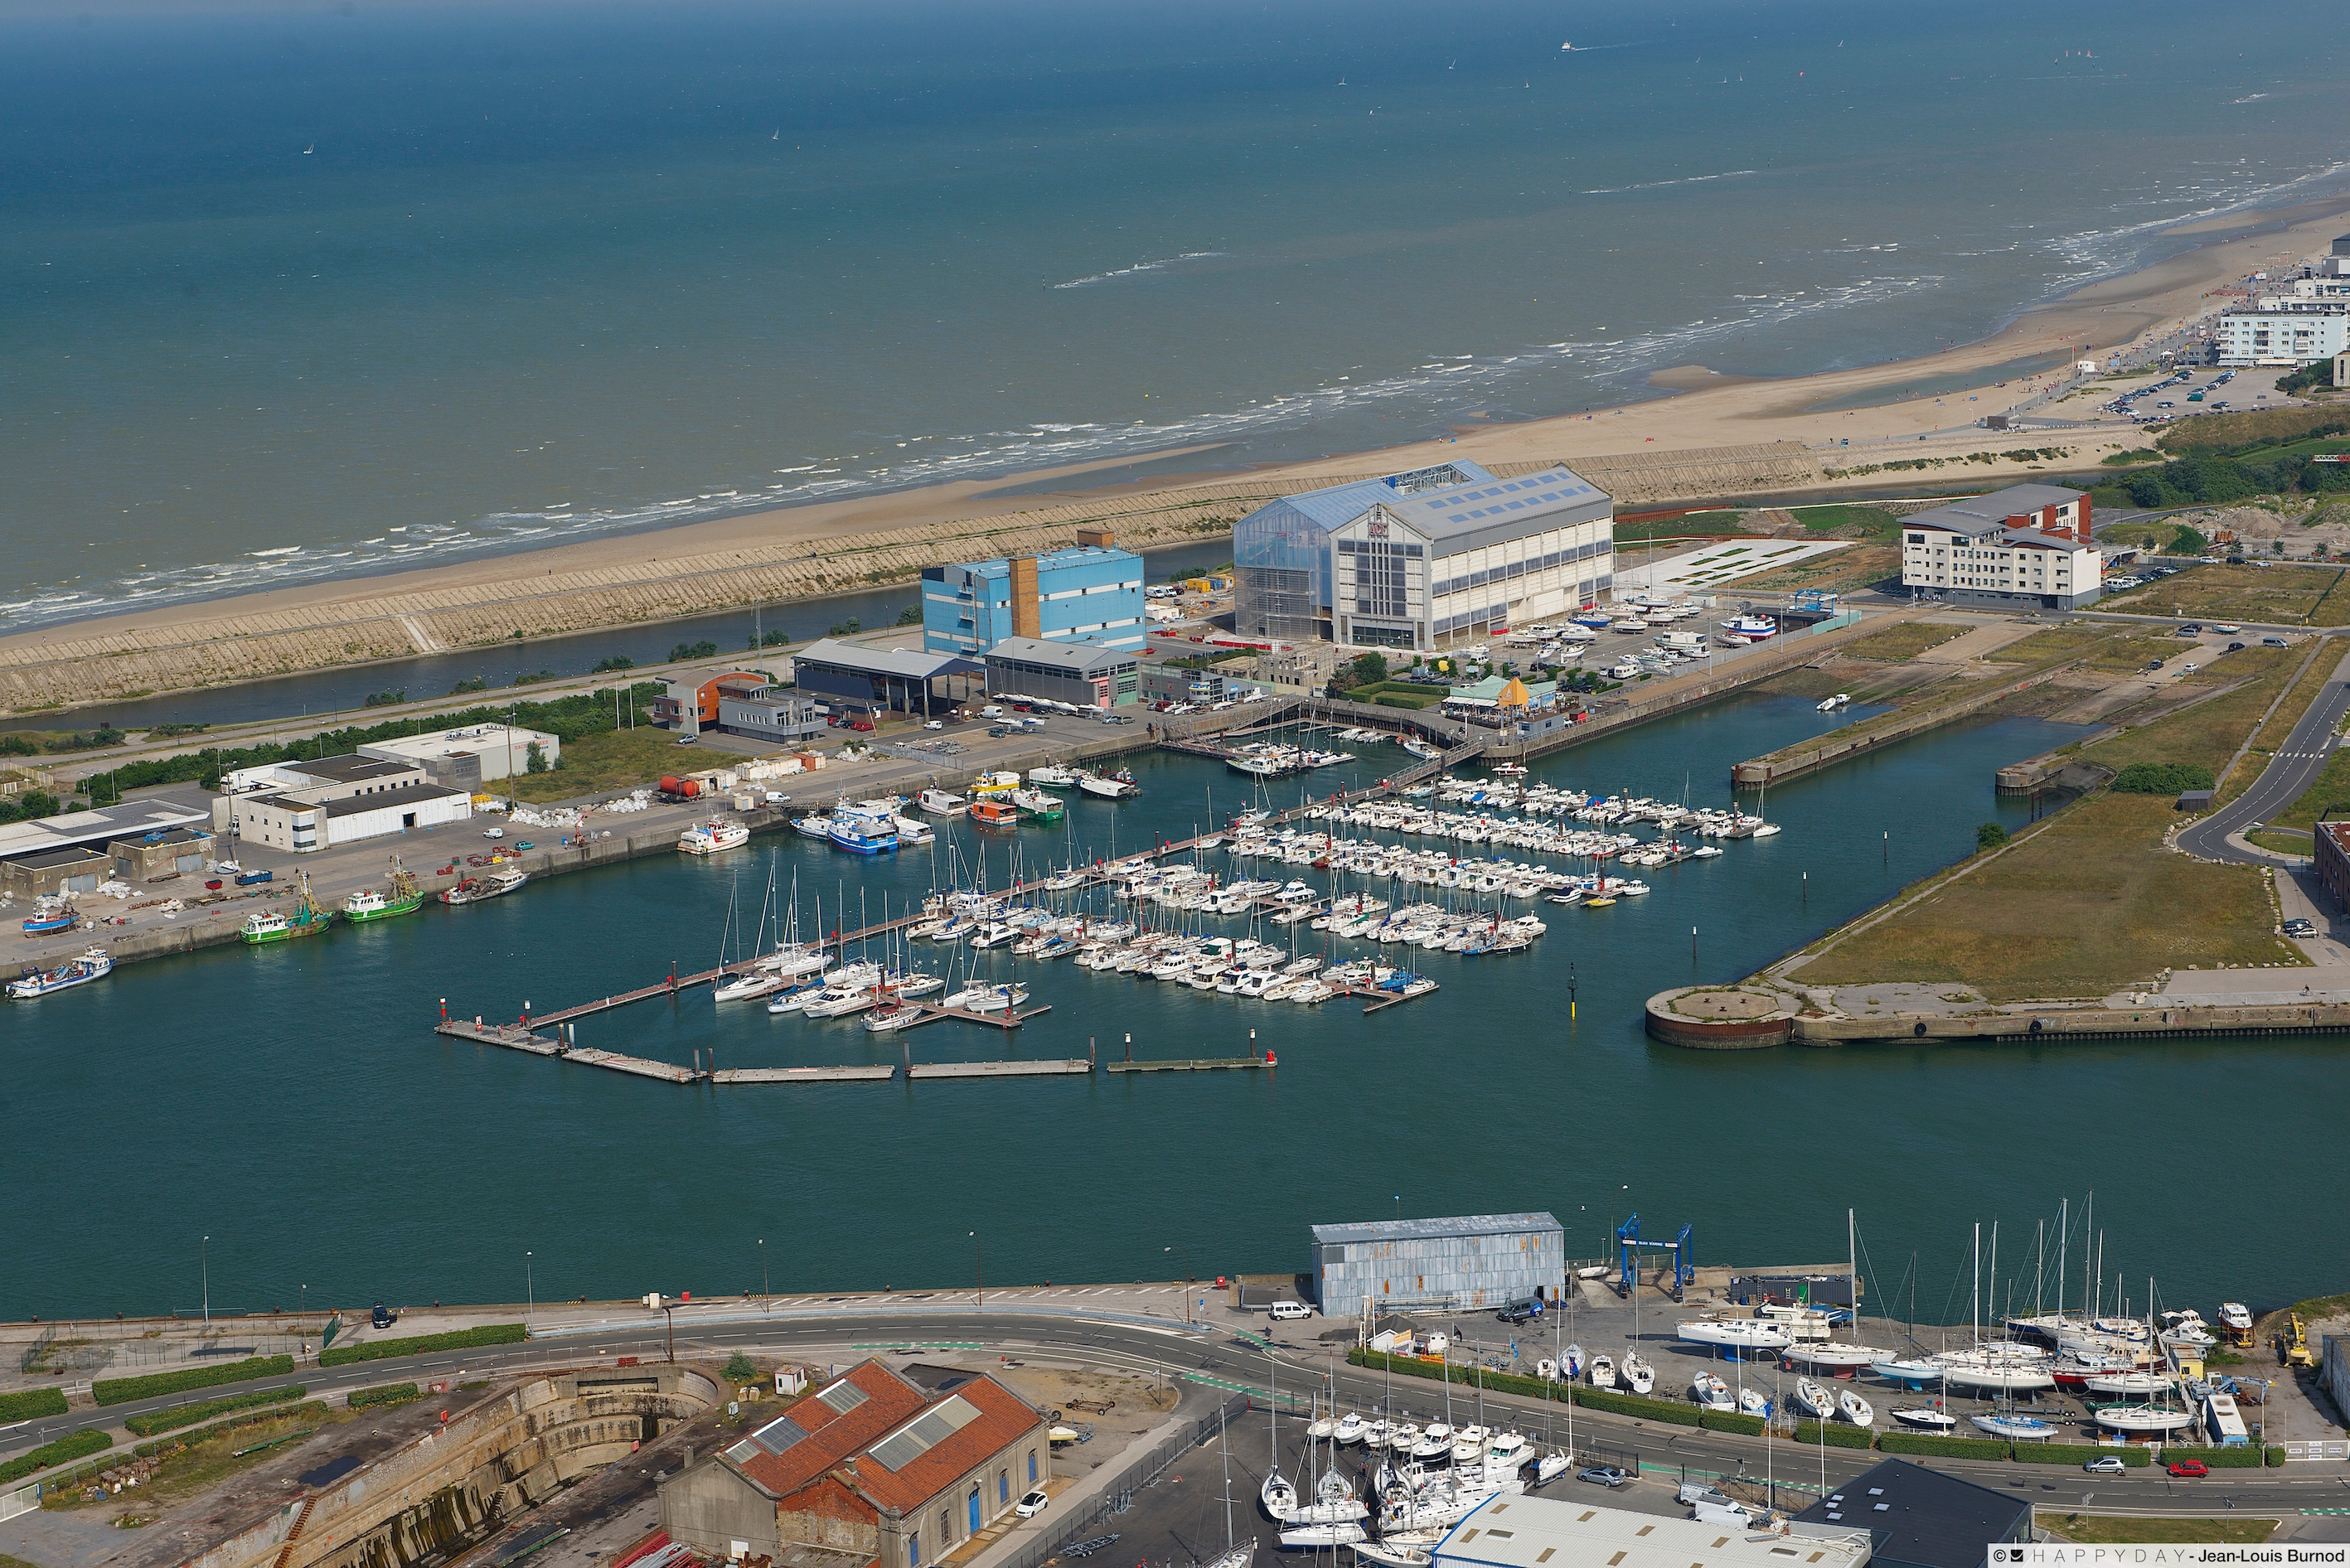 Dunkerque grand large marina transeurope marinas - Restaurant grand large dunkerque ...